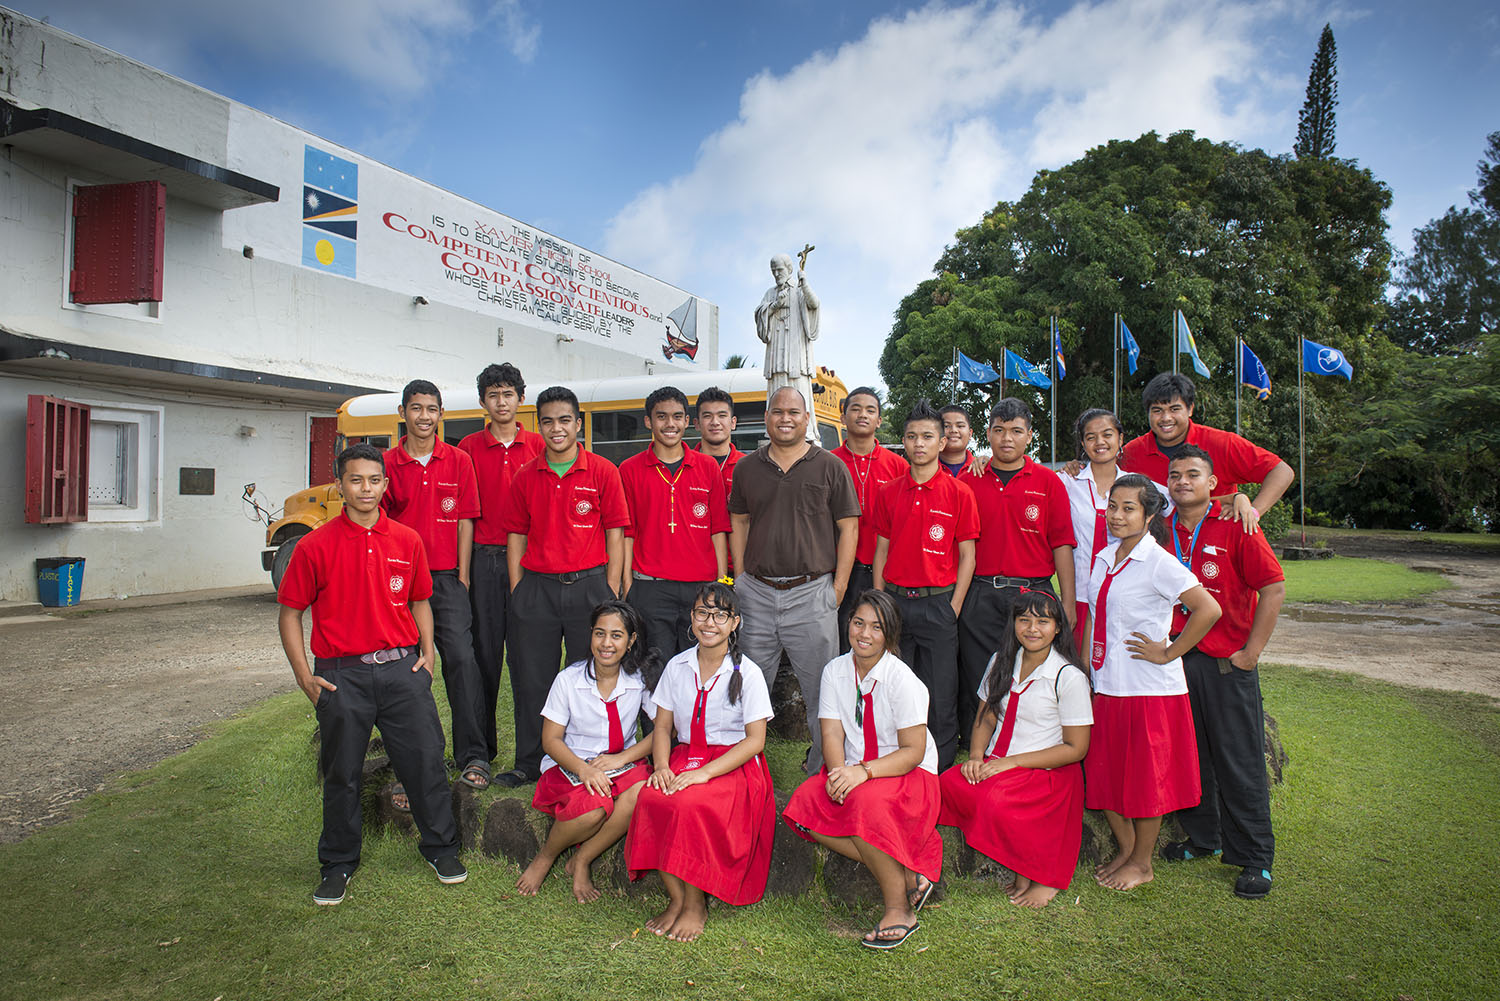 <p>Vice Principal Martin Carl with students at Xavier High School, a Jesuit institutionthat produces many leaders.</p>